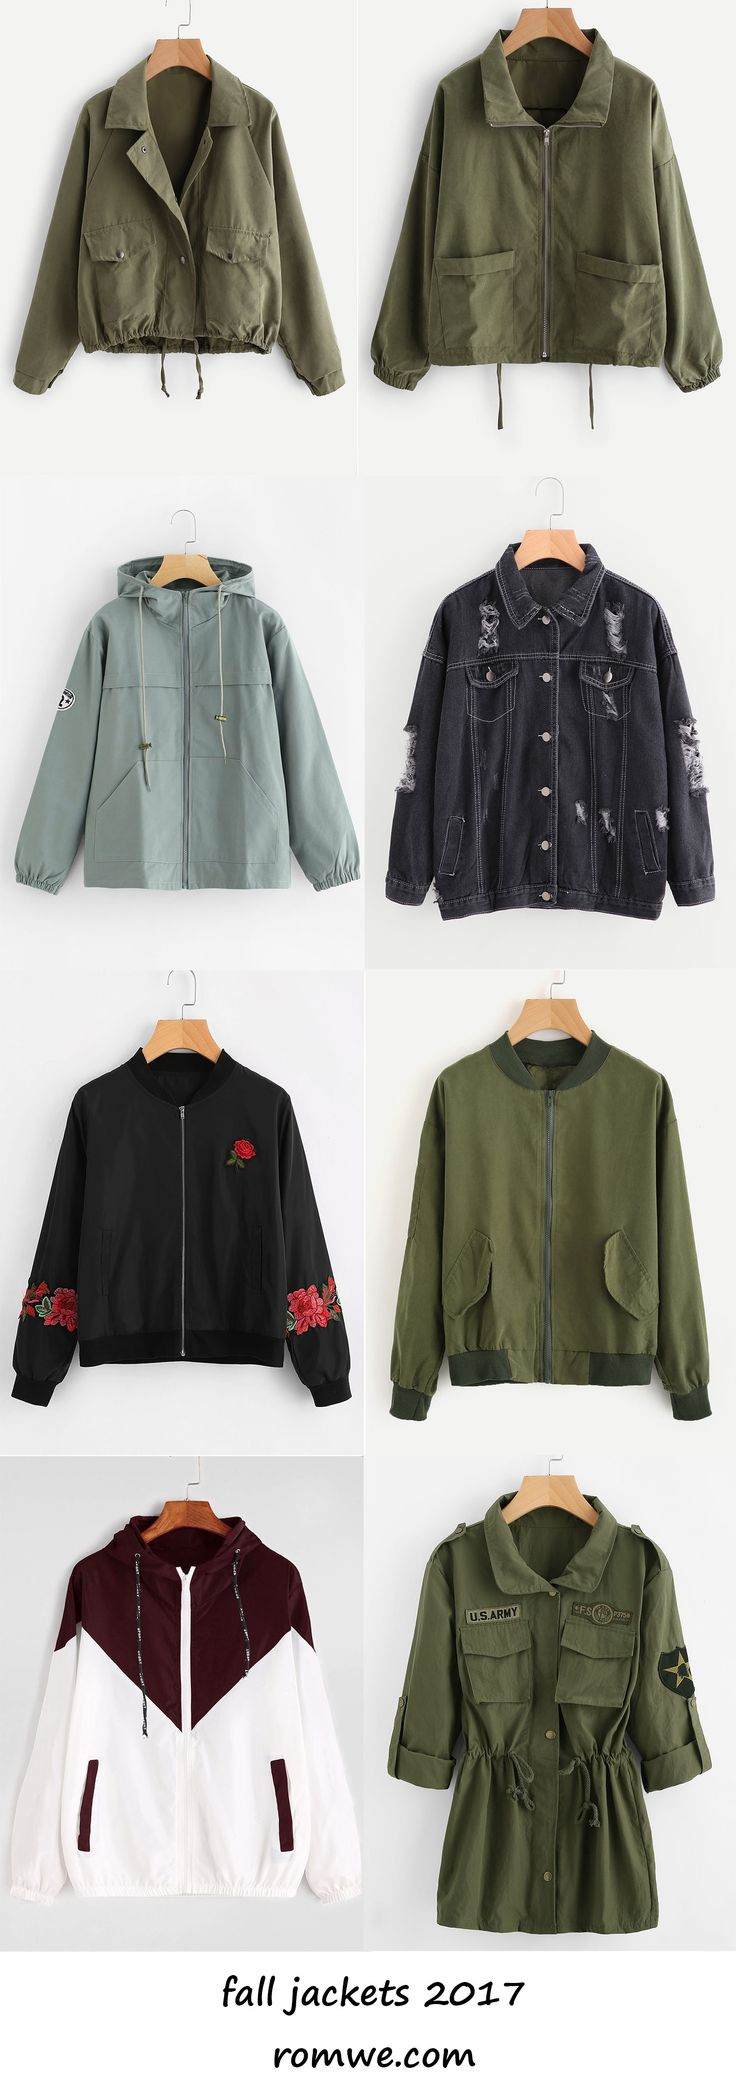 buy one get one - fall jackets 2017 from romwe.com